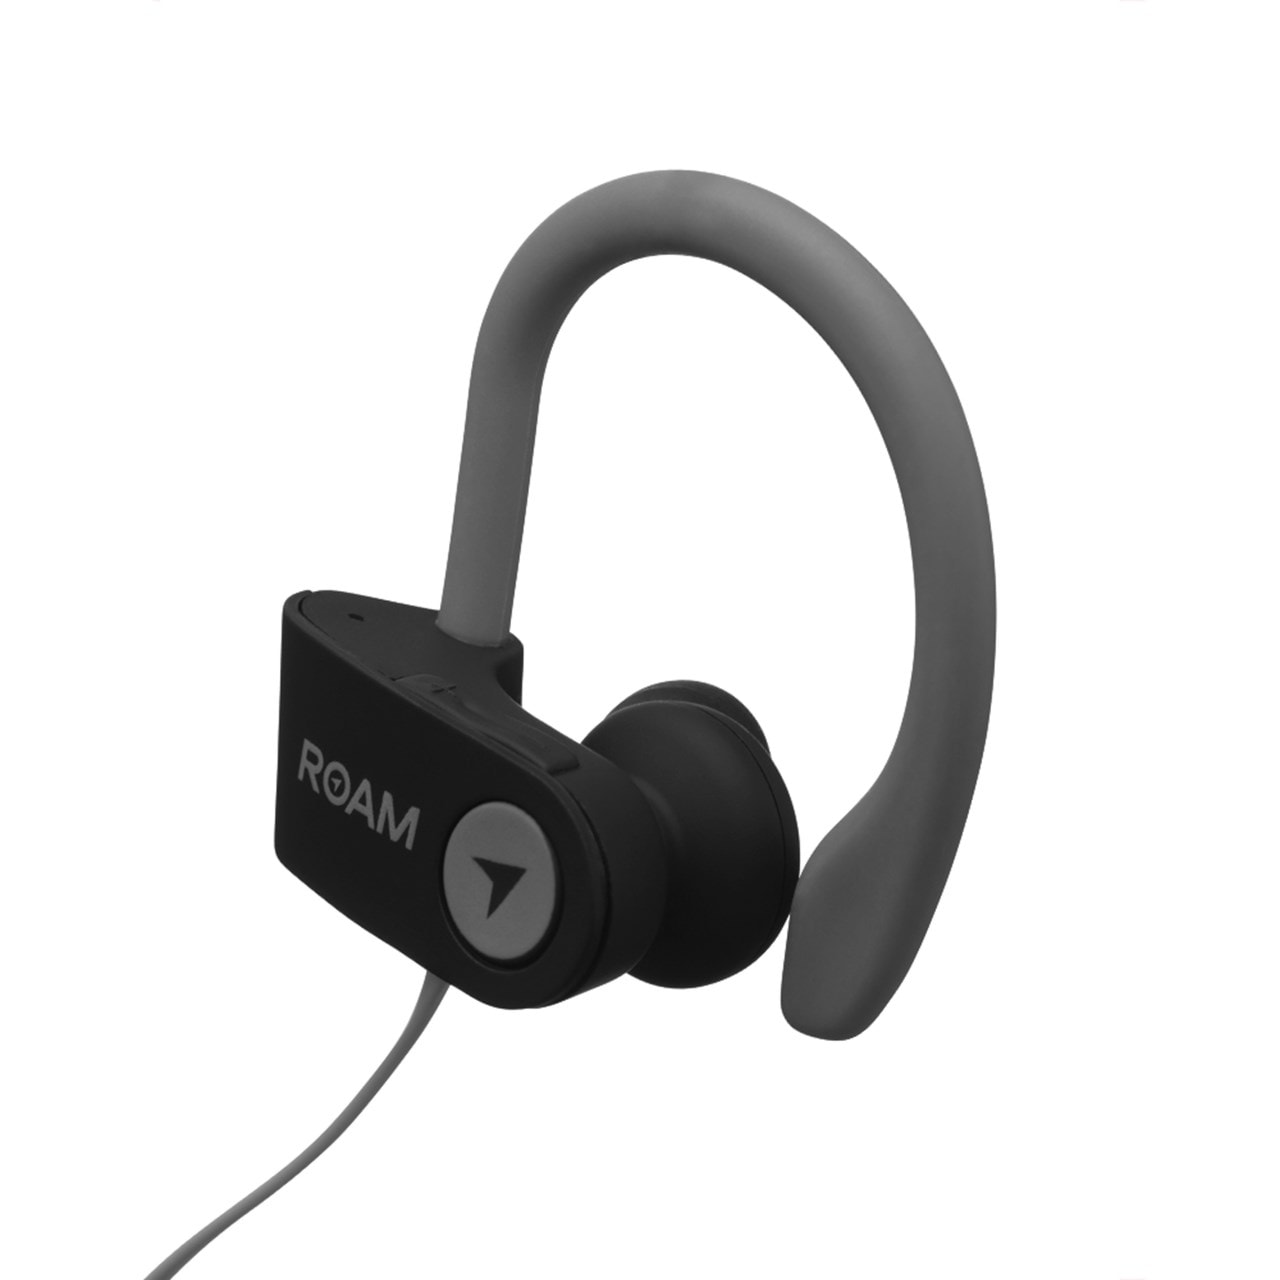 Roam Sport Ear Hook Black Bluetooth Earphones - 2